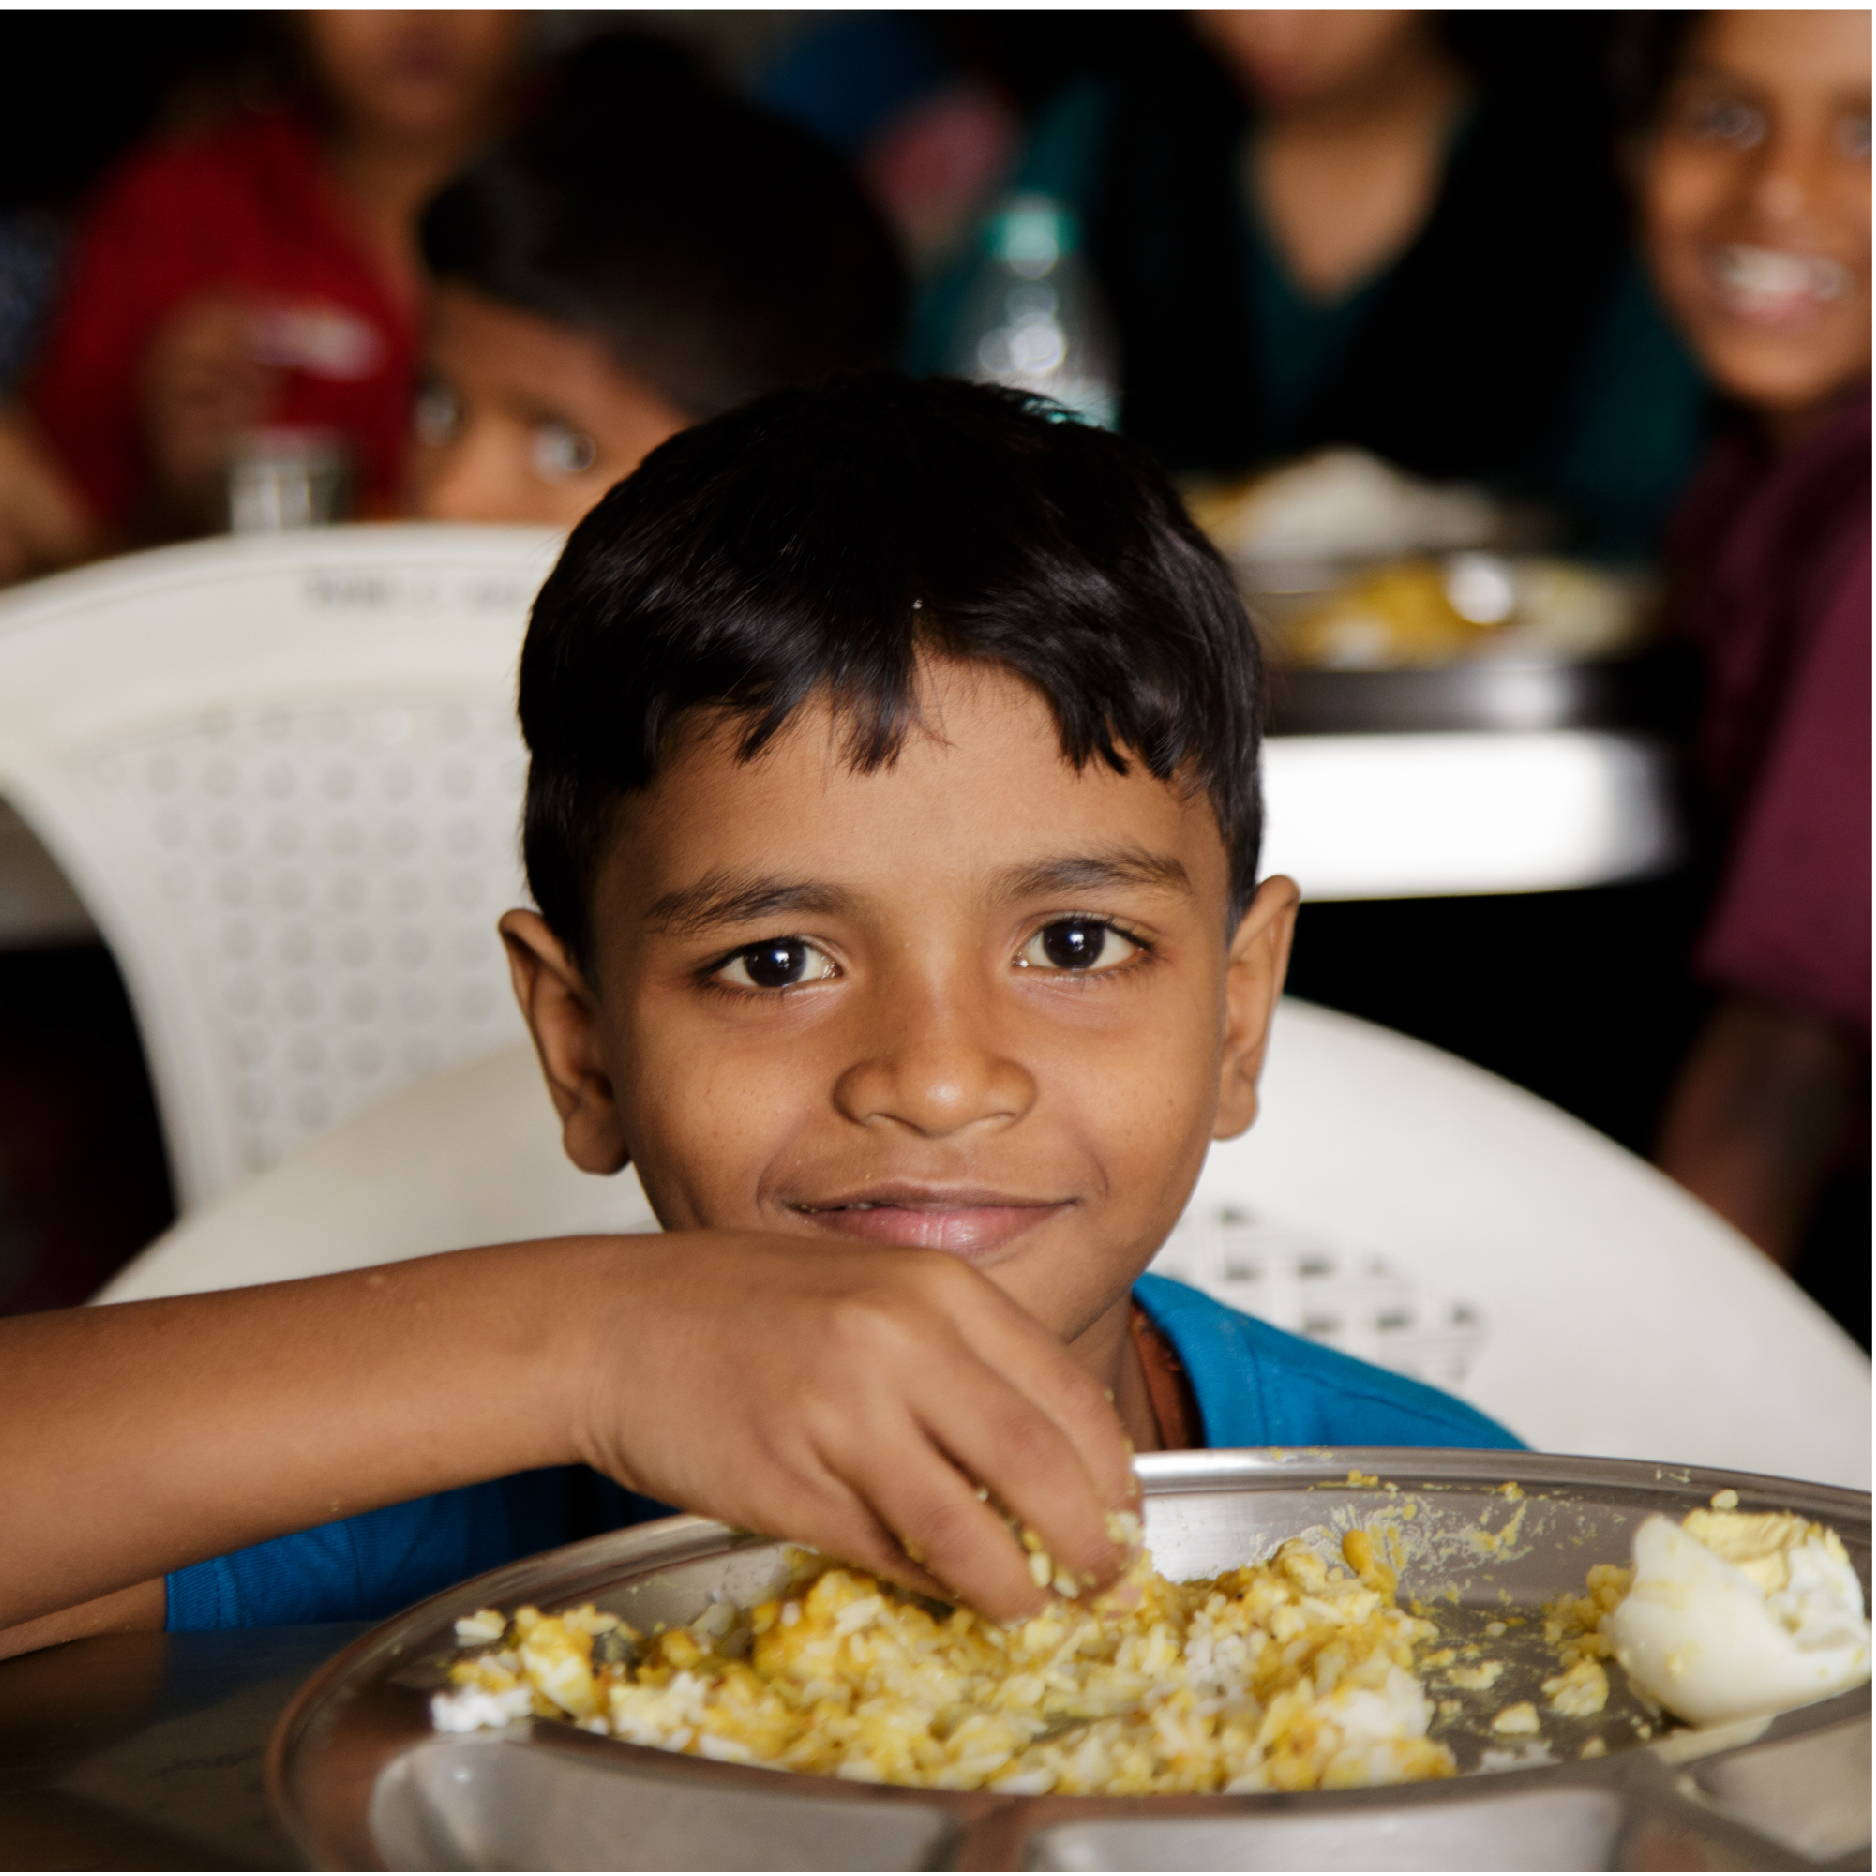 A young Indian boy sits at a table eating some rice and a hard boiled egg.